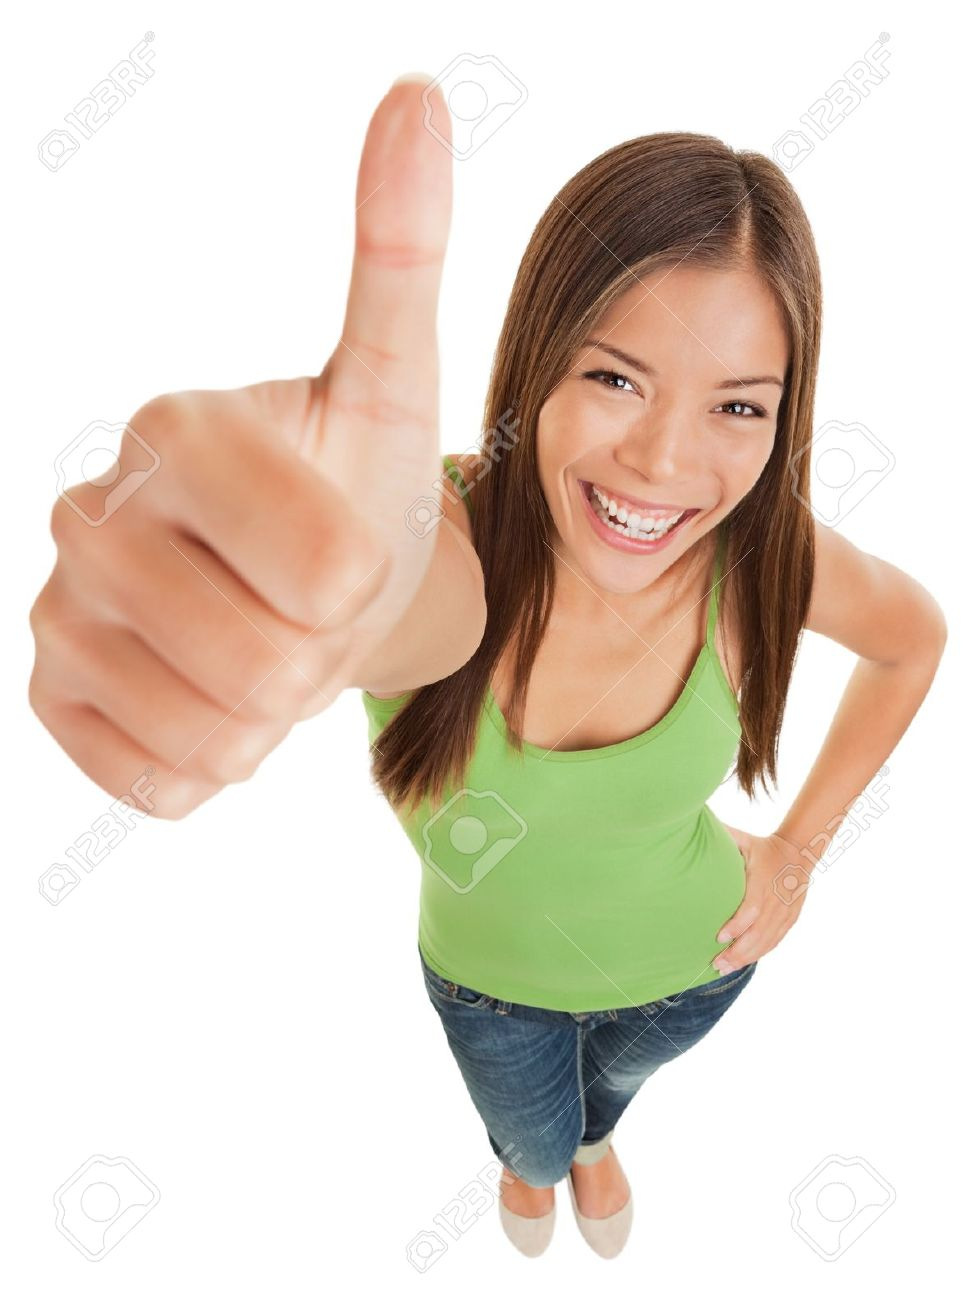 Fun high angle portrait of an attractive vivacious young woman giving a big thumbs up of success and approval isolated on white Standard-Bild - 20047447